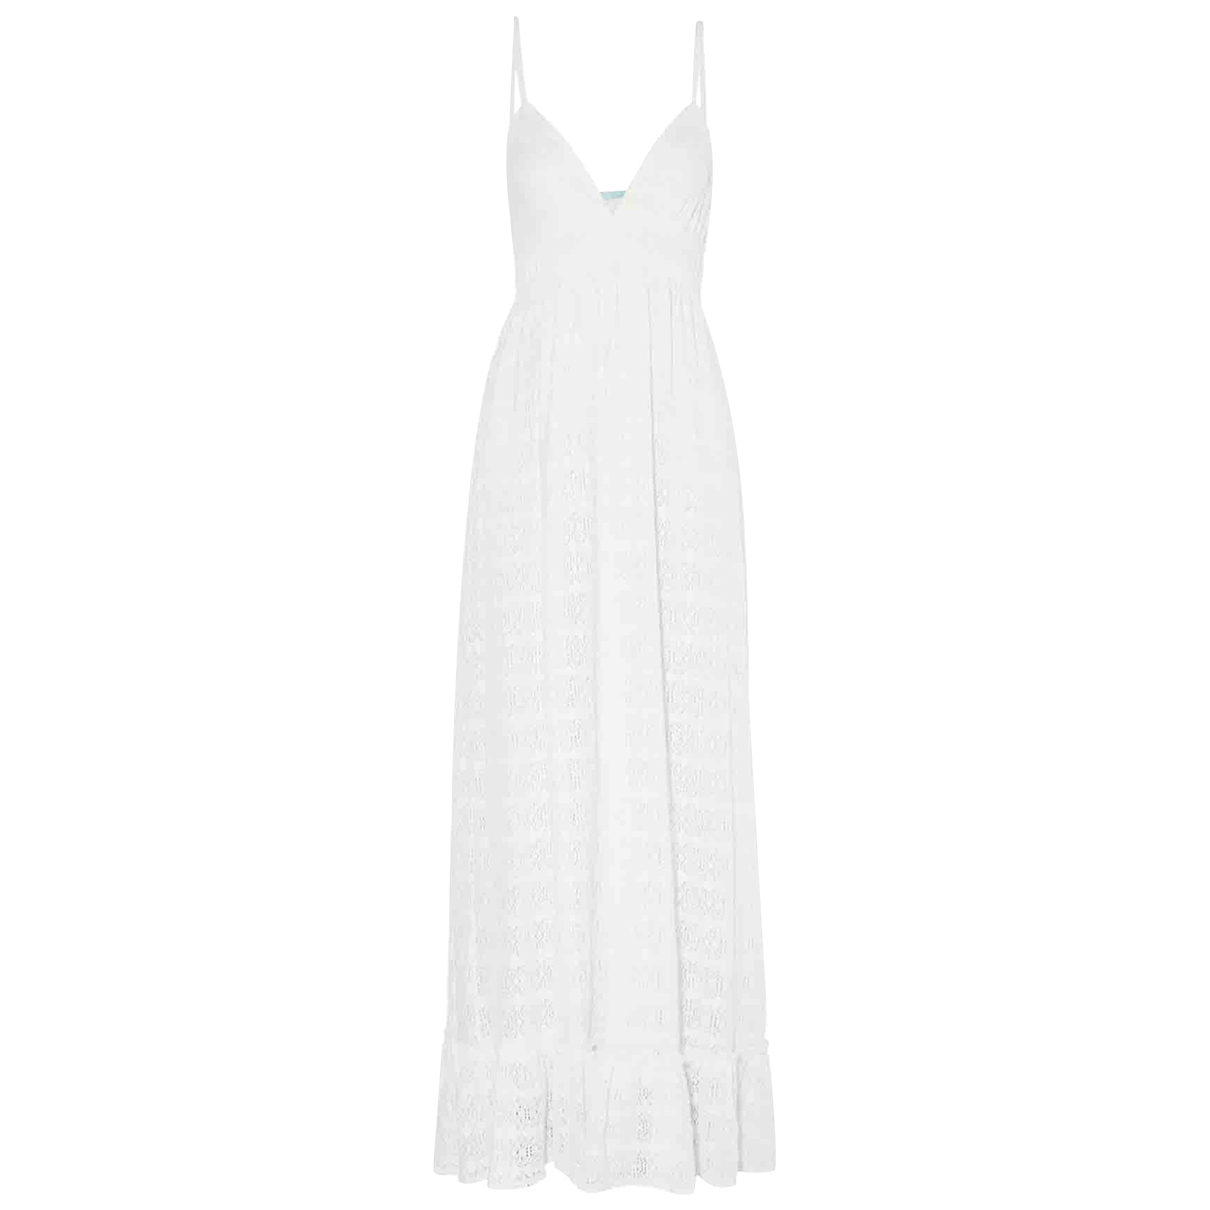 Melissa Odabash \N Kleid in  Weiss Polyester